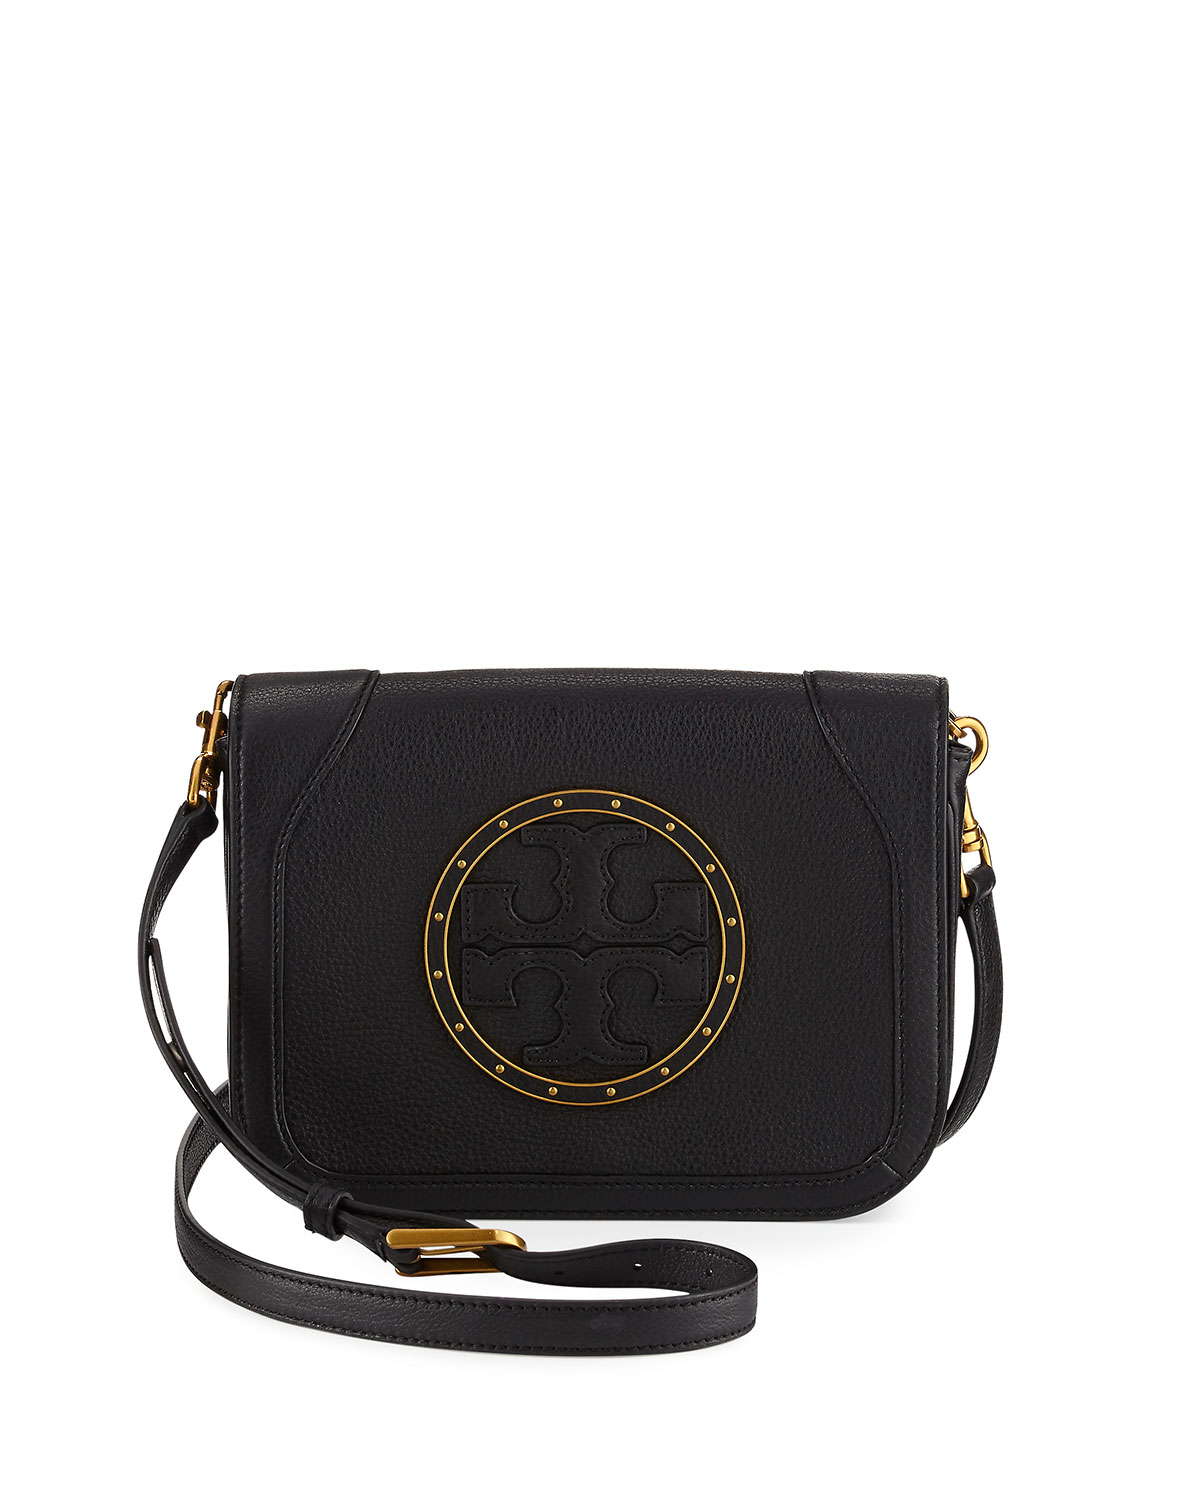 4230d28bbb5 Tory Burch Studded Leather Full-Flap Crossbody Bag